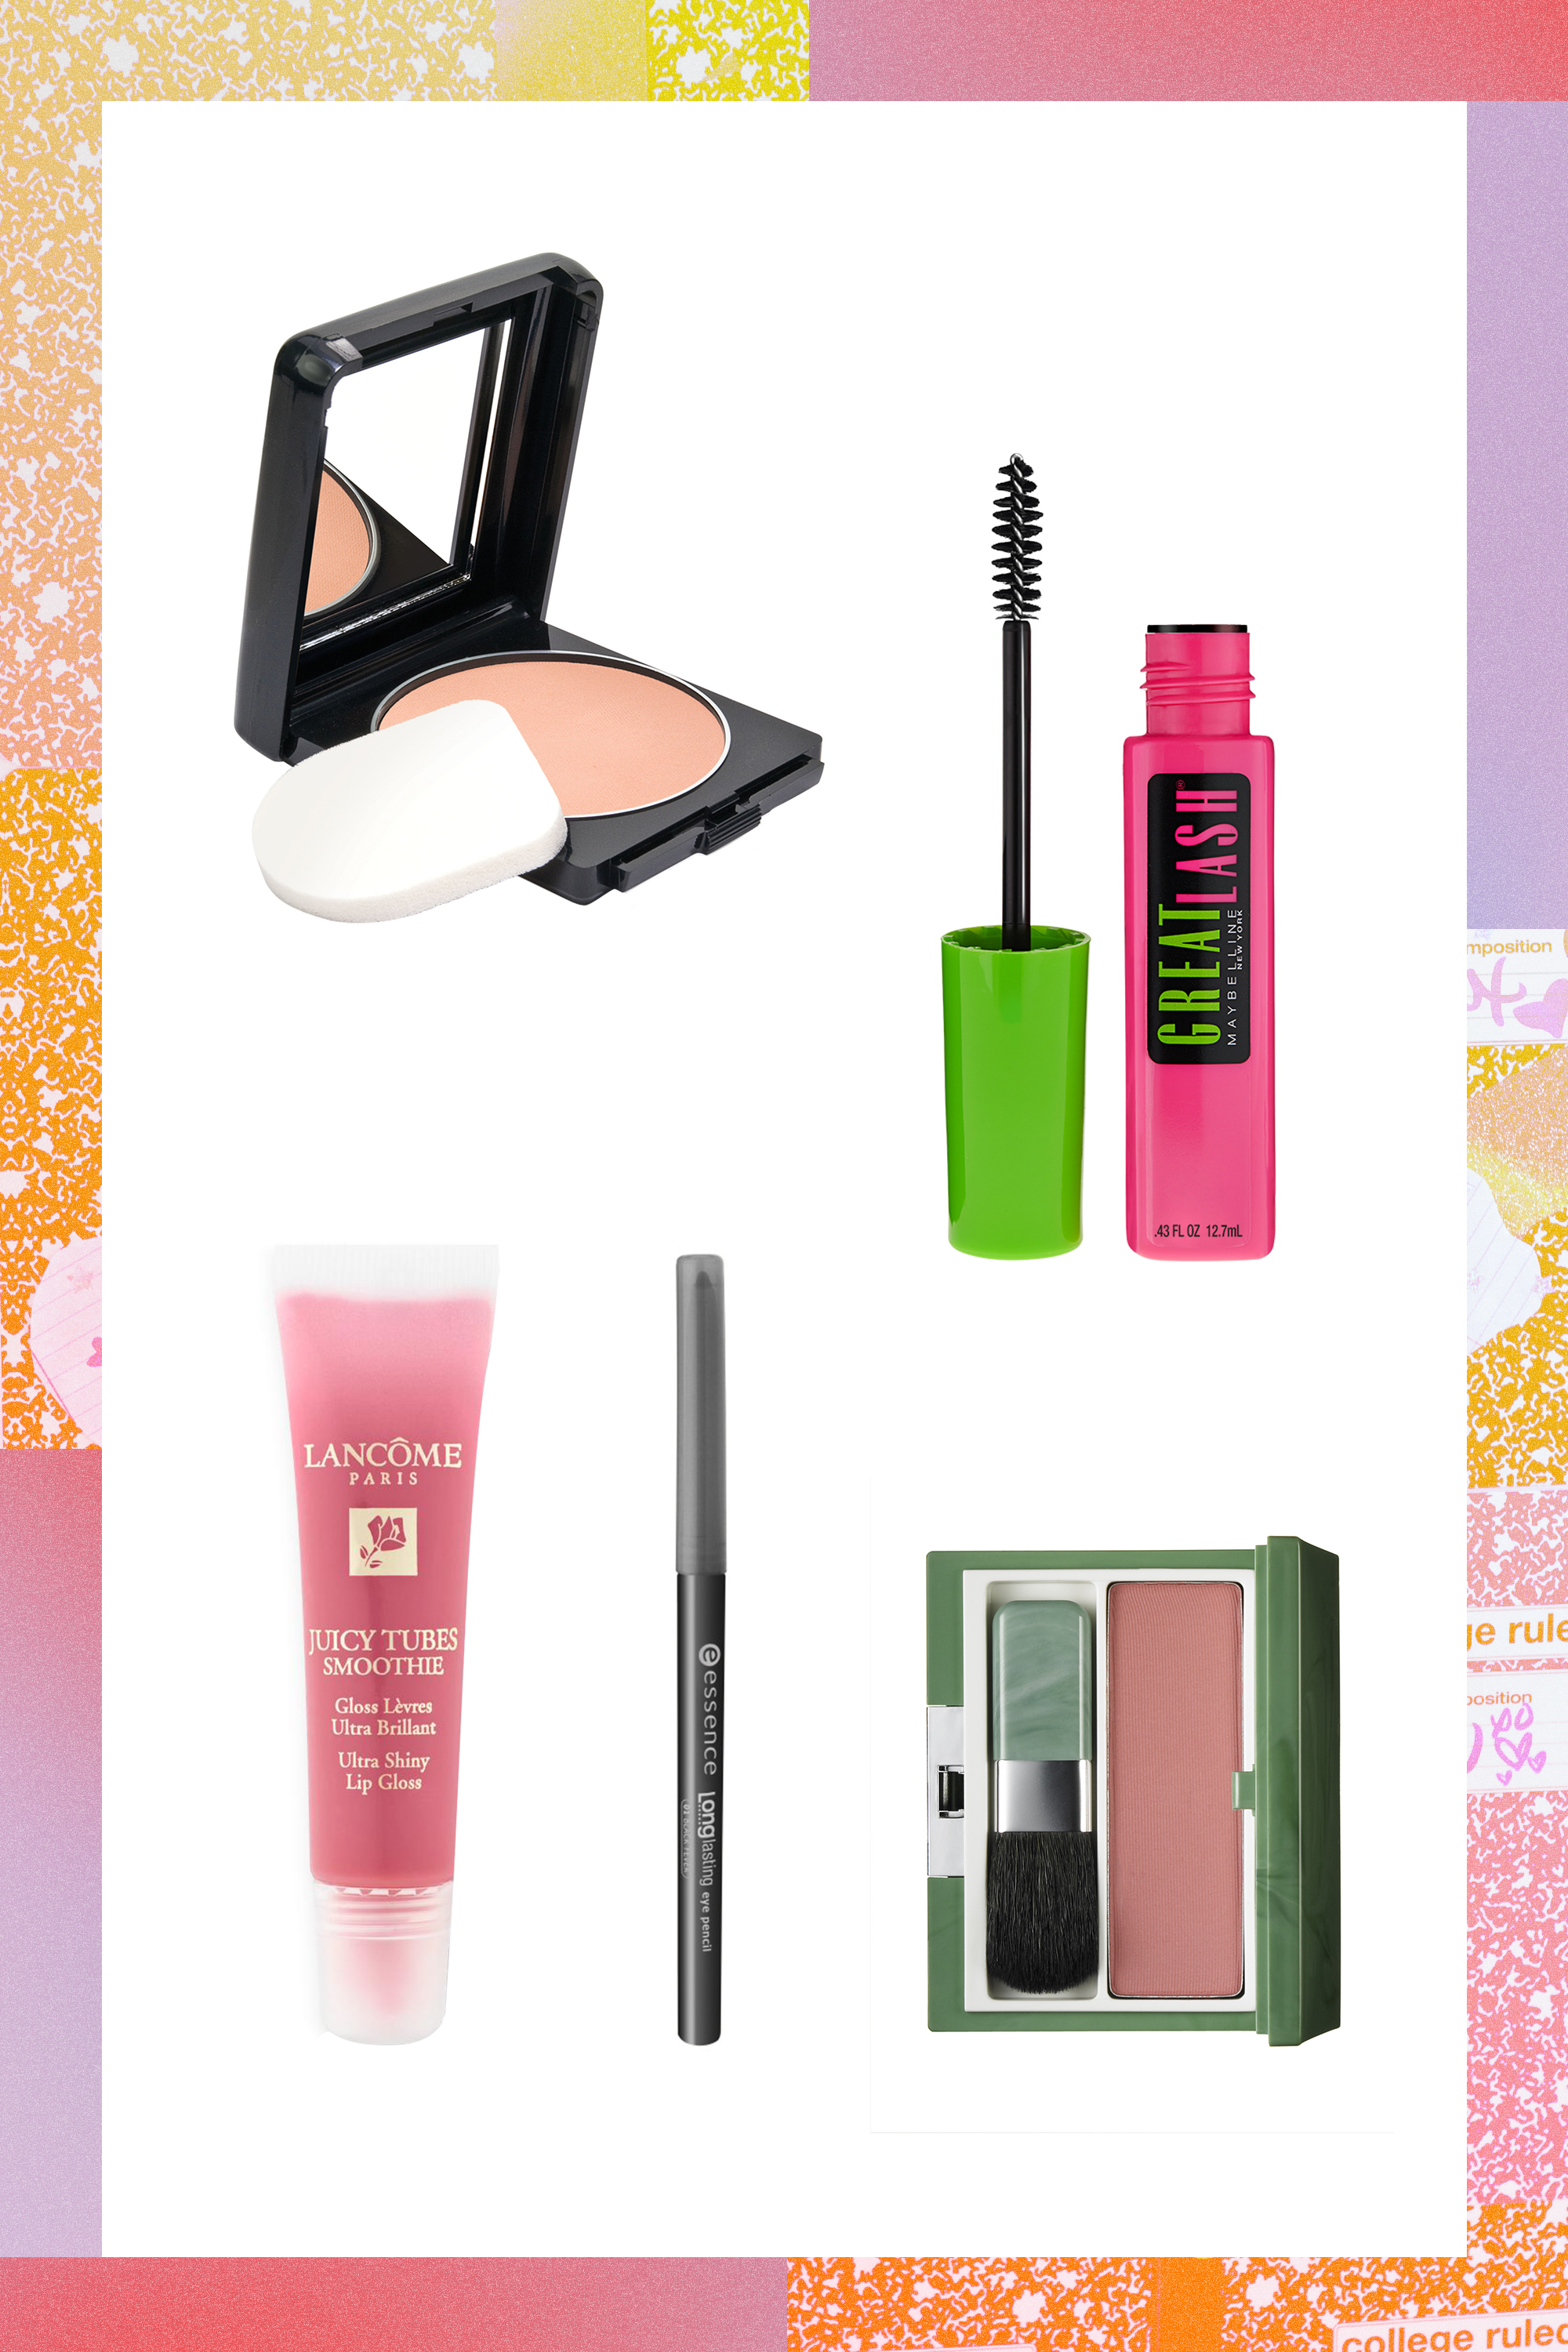 Buy 4 Drugstore Back-to-School Beauty Picks picture trends